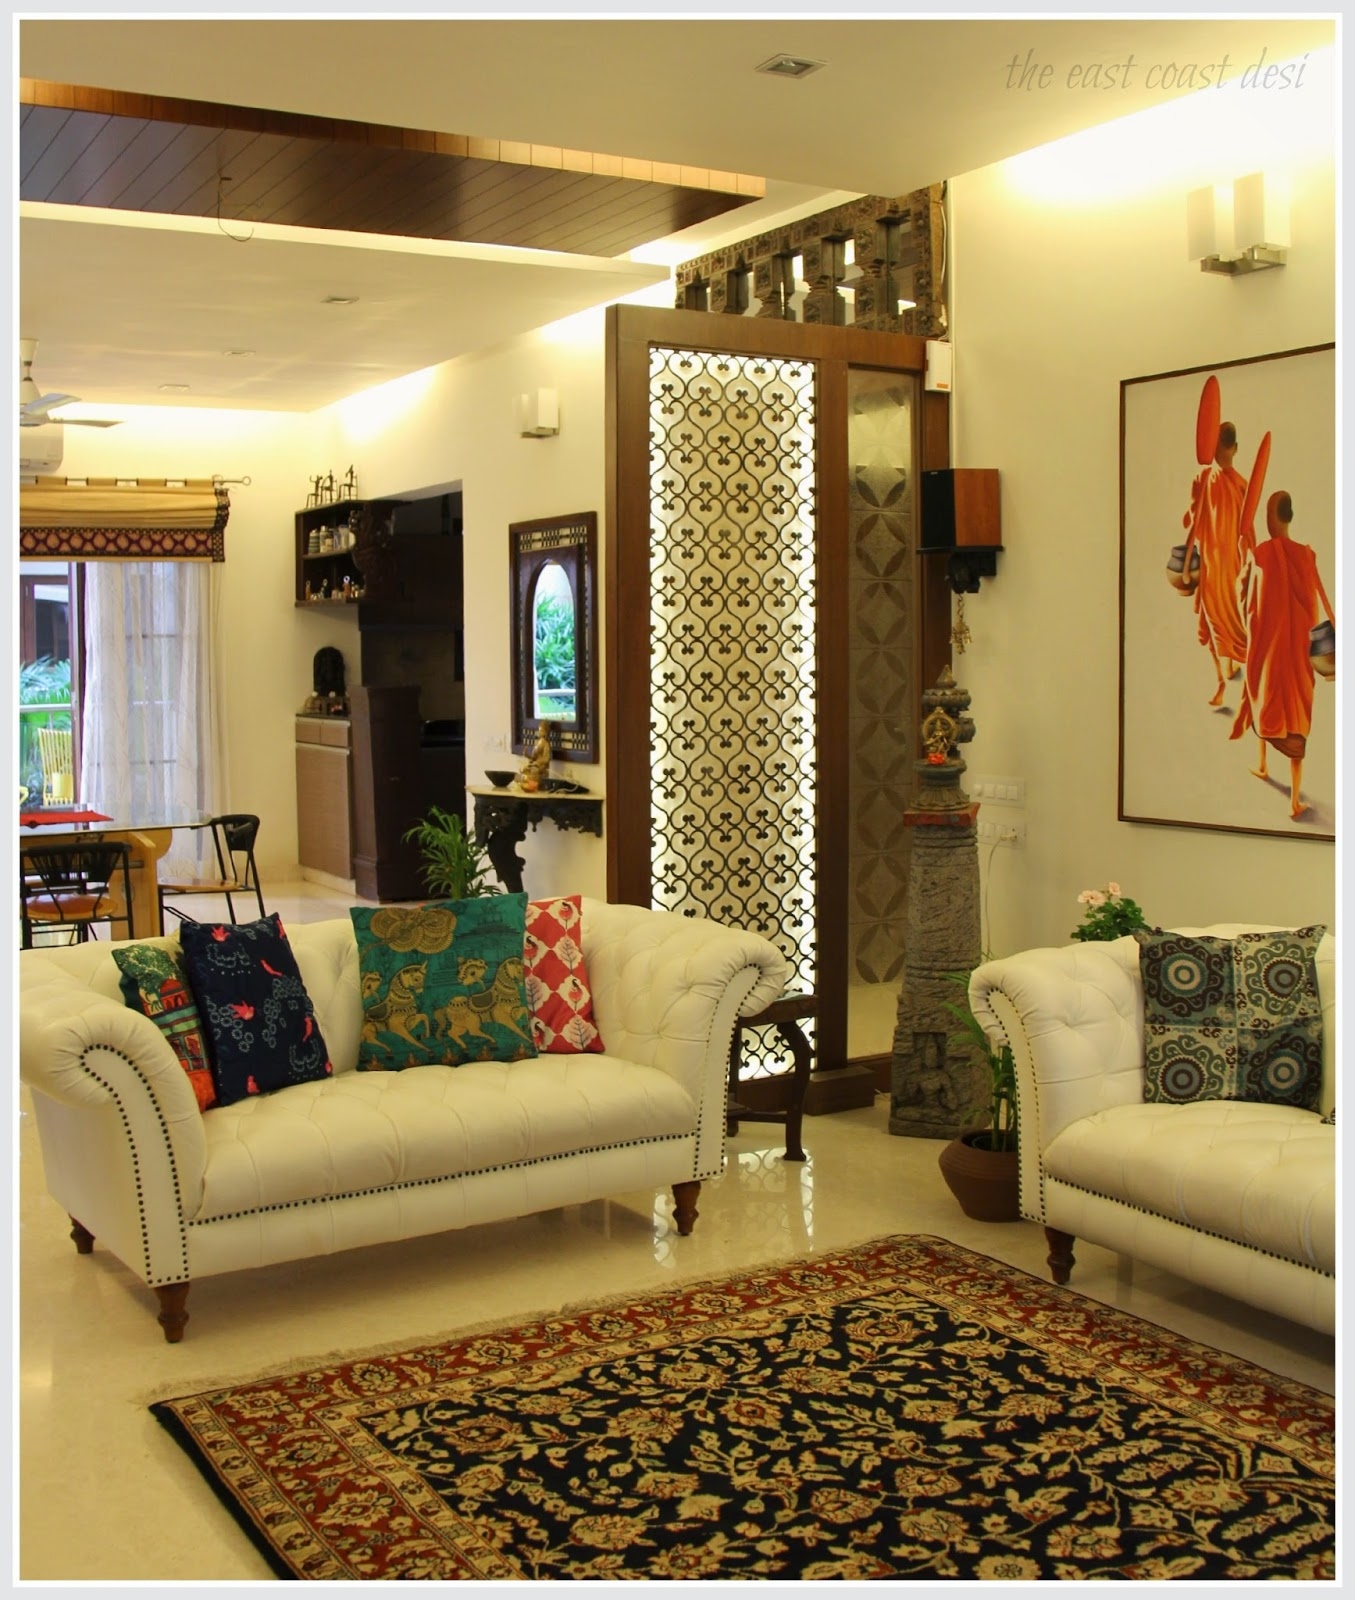 The east coast desi masterful mixing home tour - Home interior design indian style ...